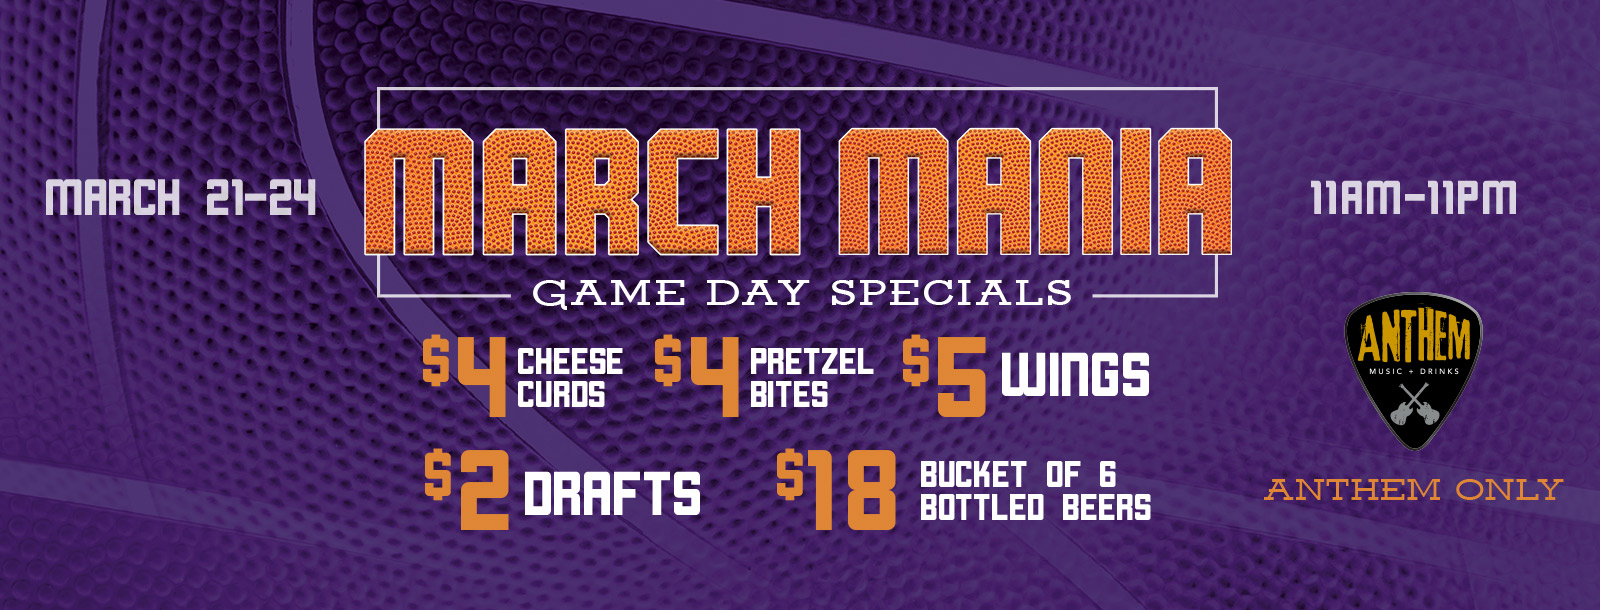 march mania game day specials